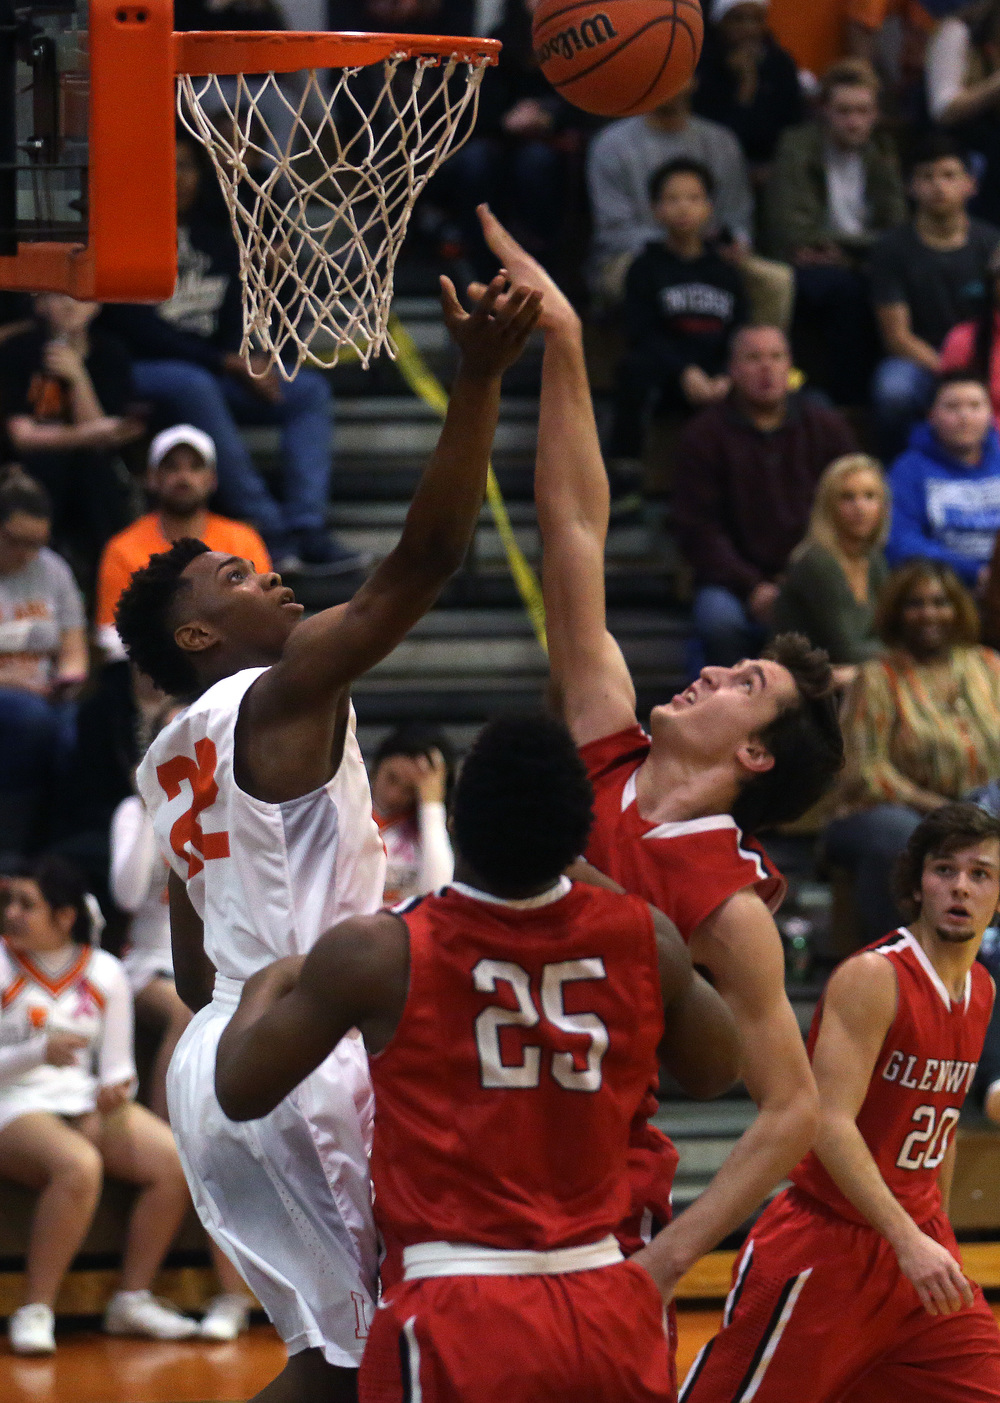 Glenwood's Joel Alexander puts up a shot blocked by Lanphier's Rudy Ester. David Spencer/The State Journal Register